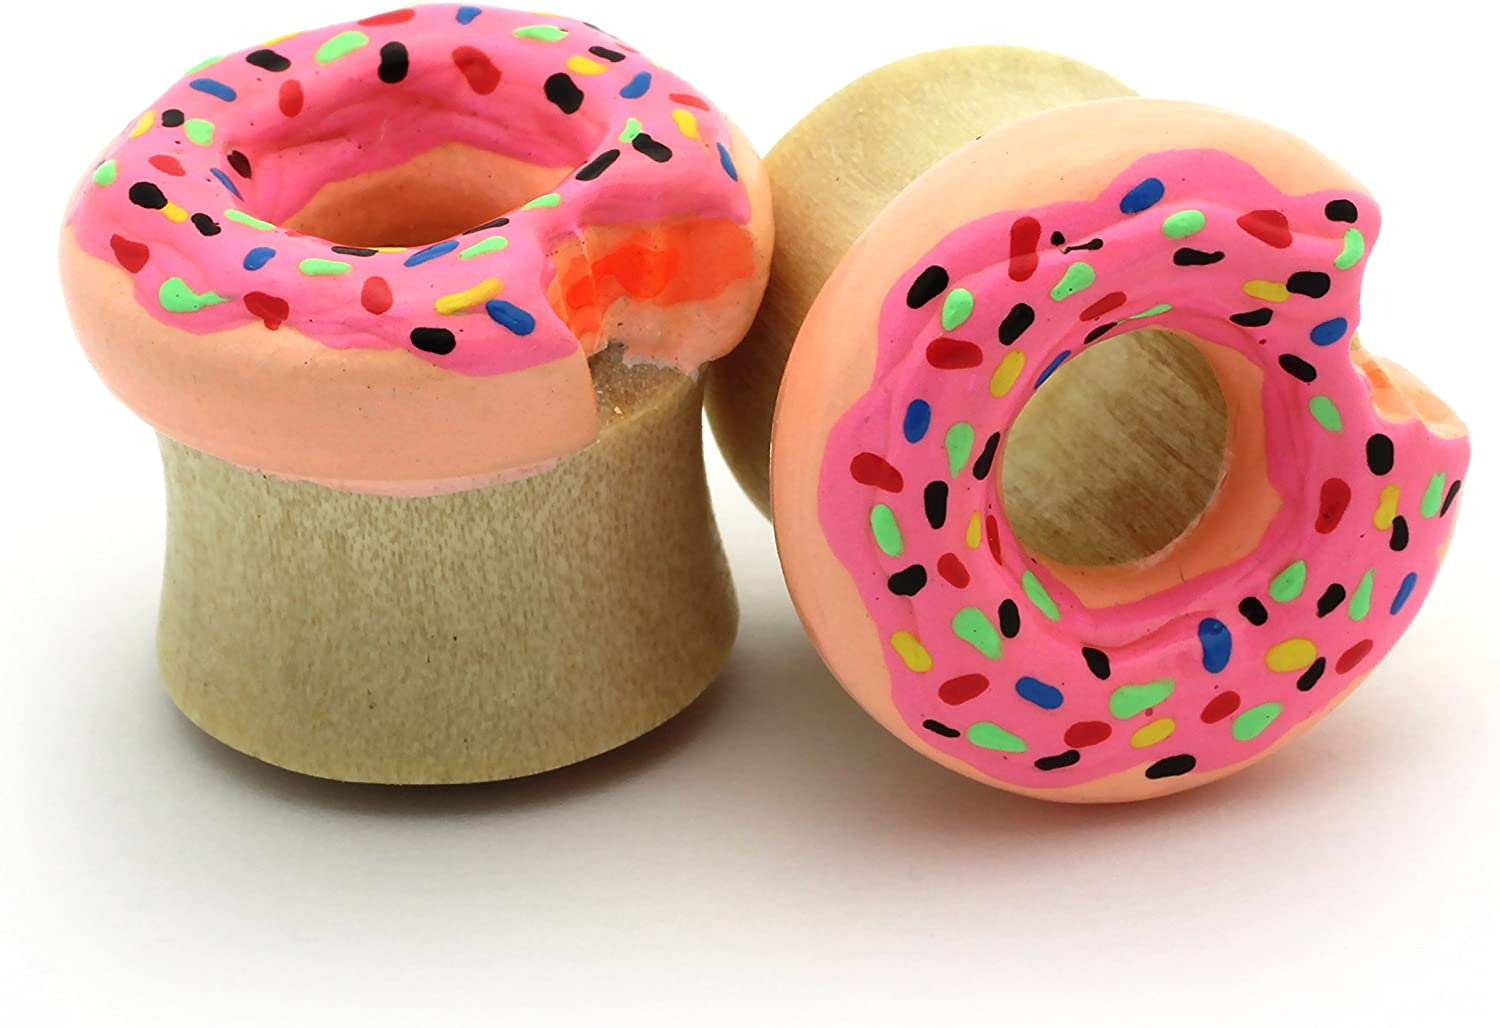 Pink Doughnut with Sprinkles Double Flare Tunnel Organic Wood Ear Plug Body Piercing Jewelry Pair